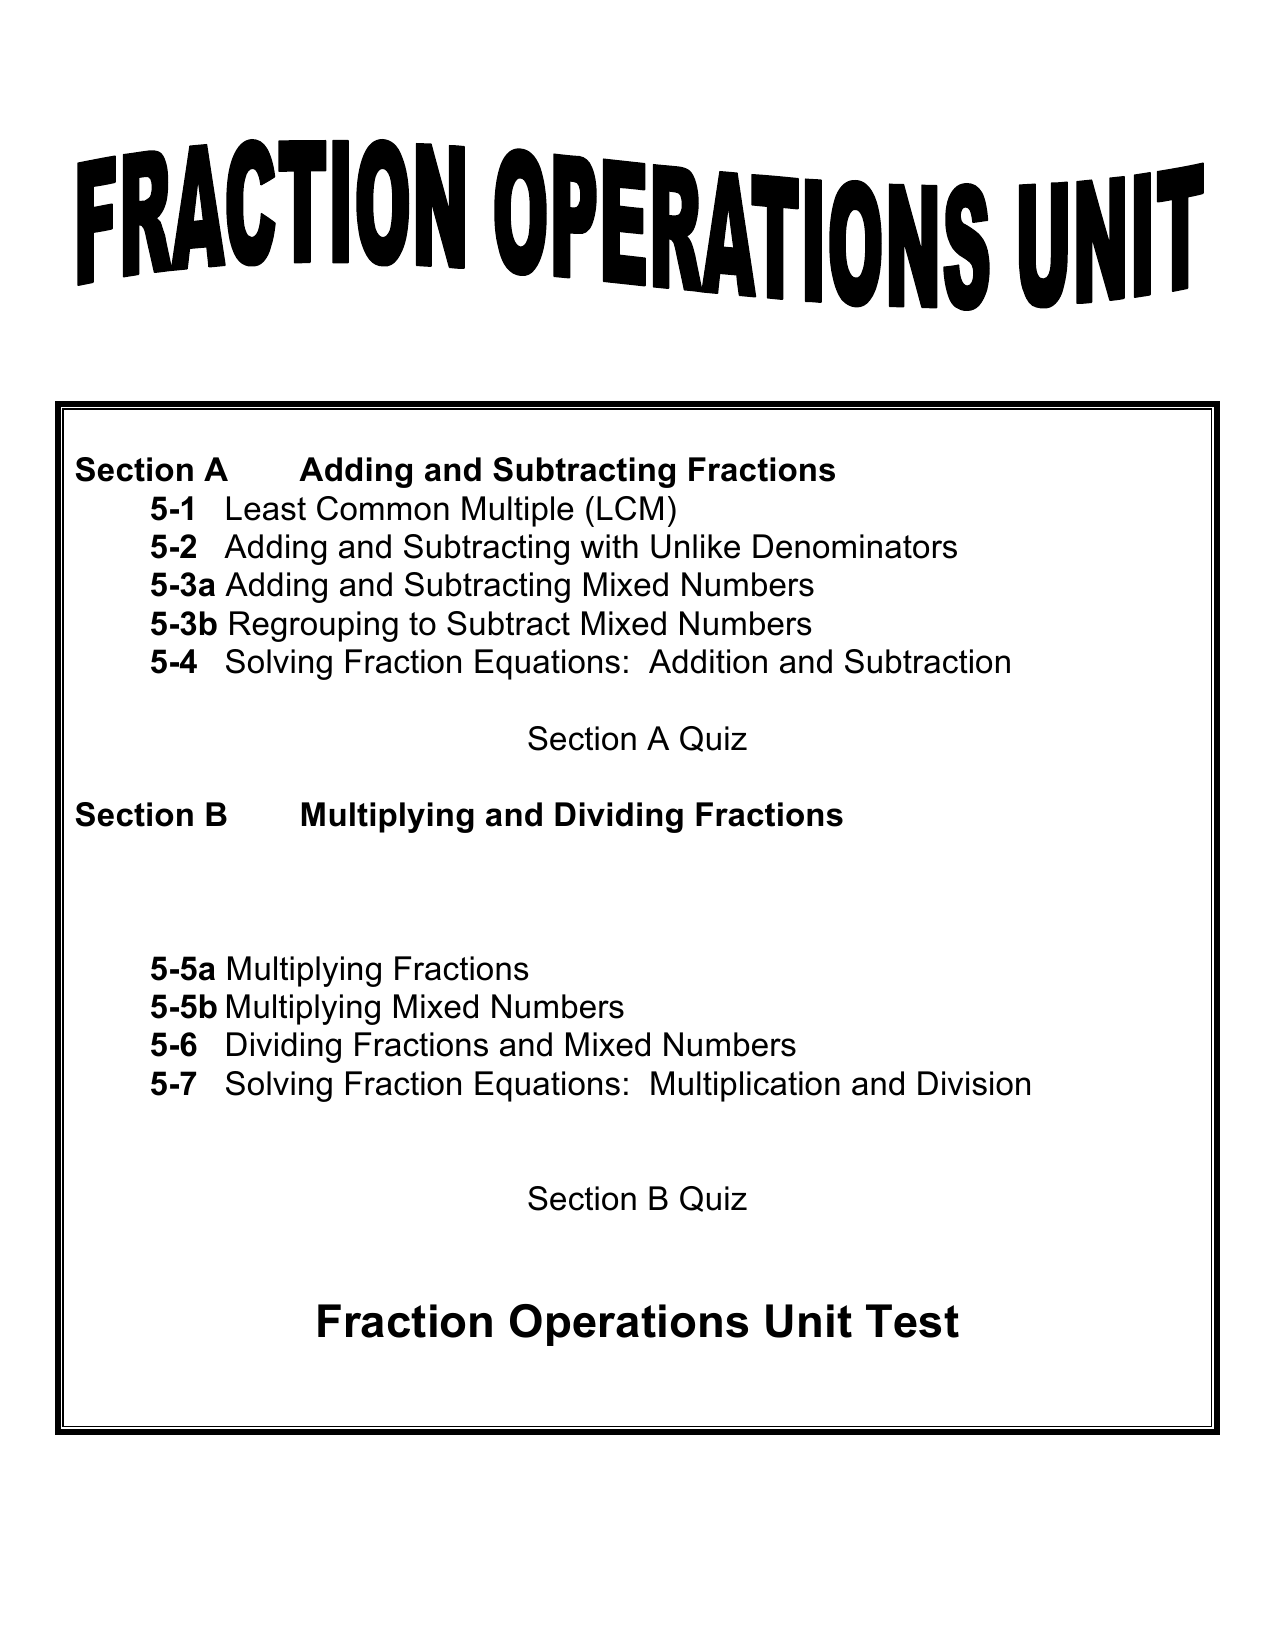 solving fraction equations multiplication and division